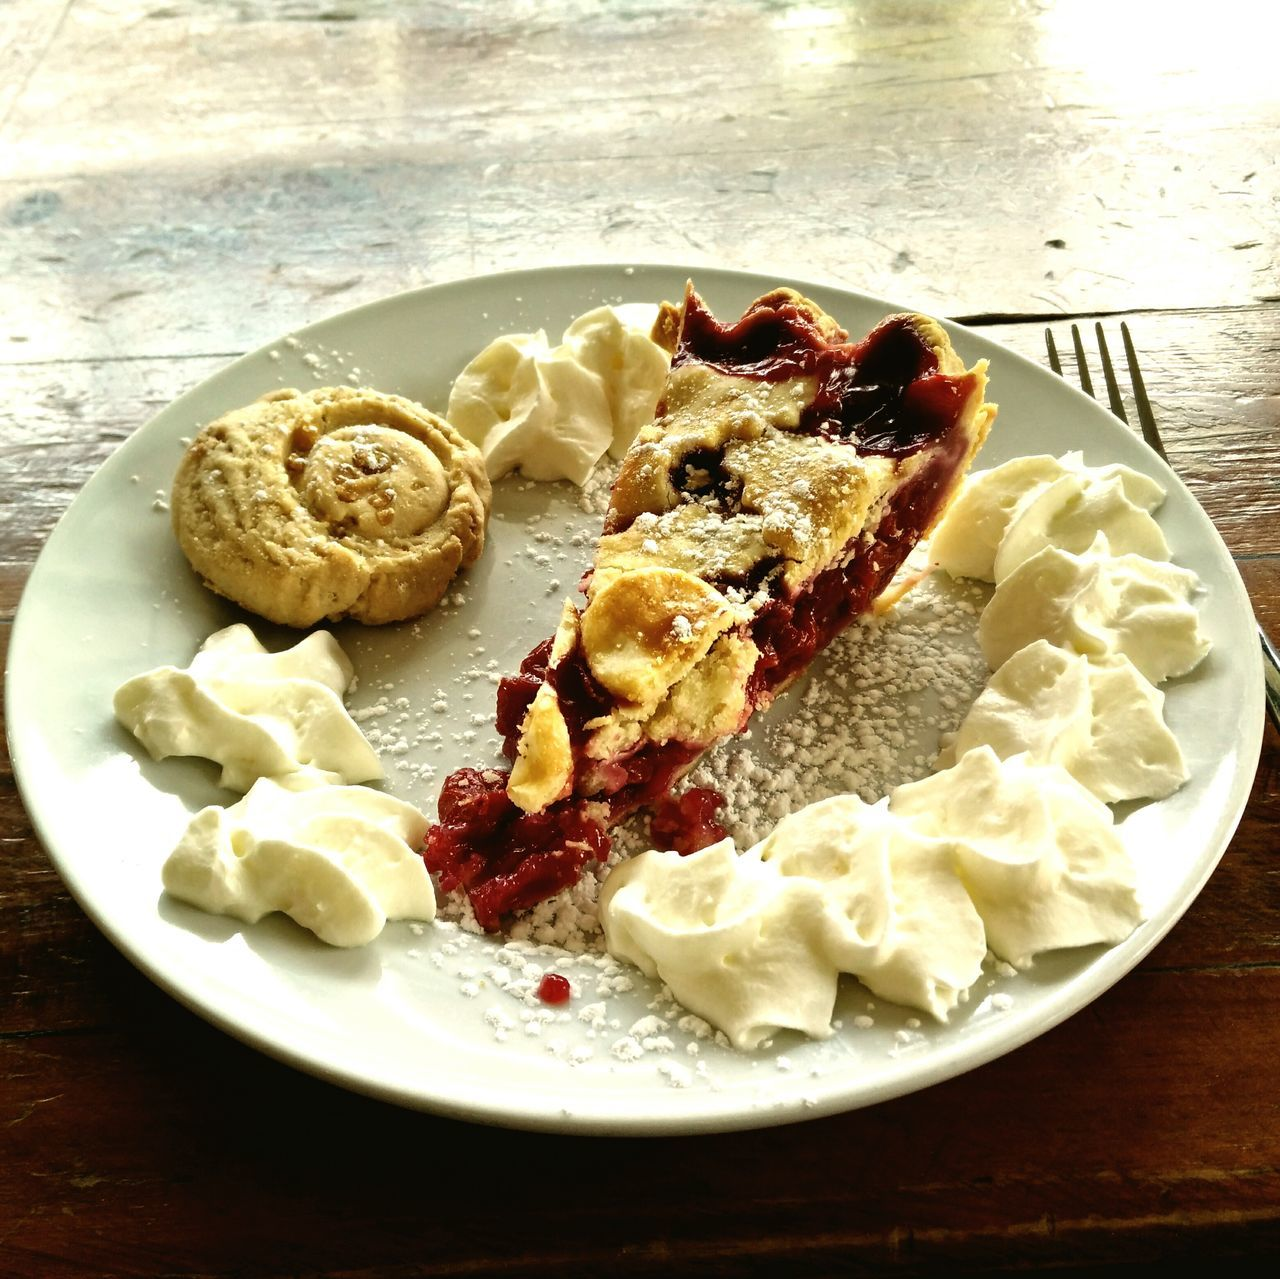 Cherry Pie With Cream and Maple Cookie in Toronto